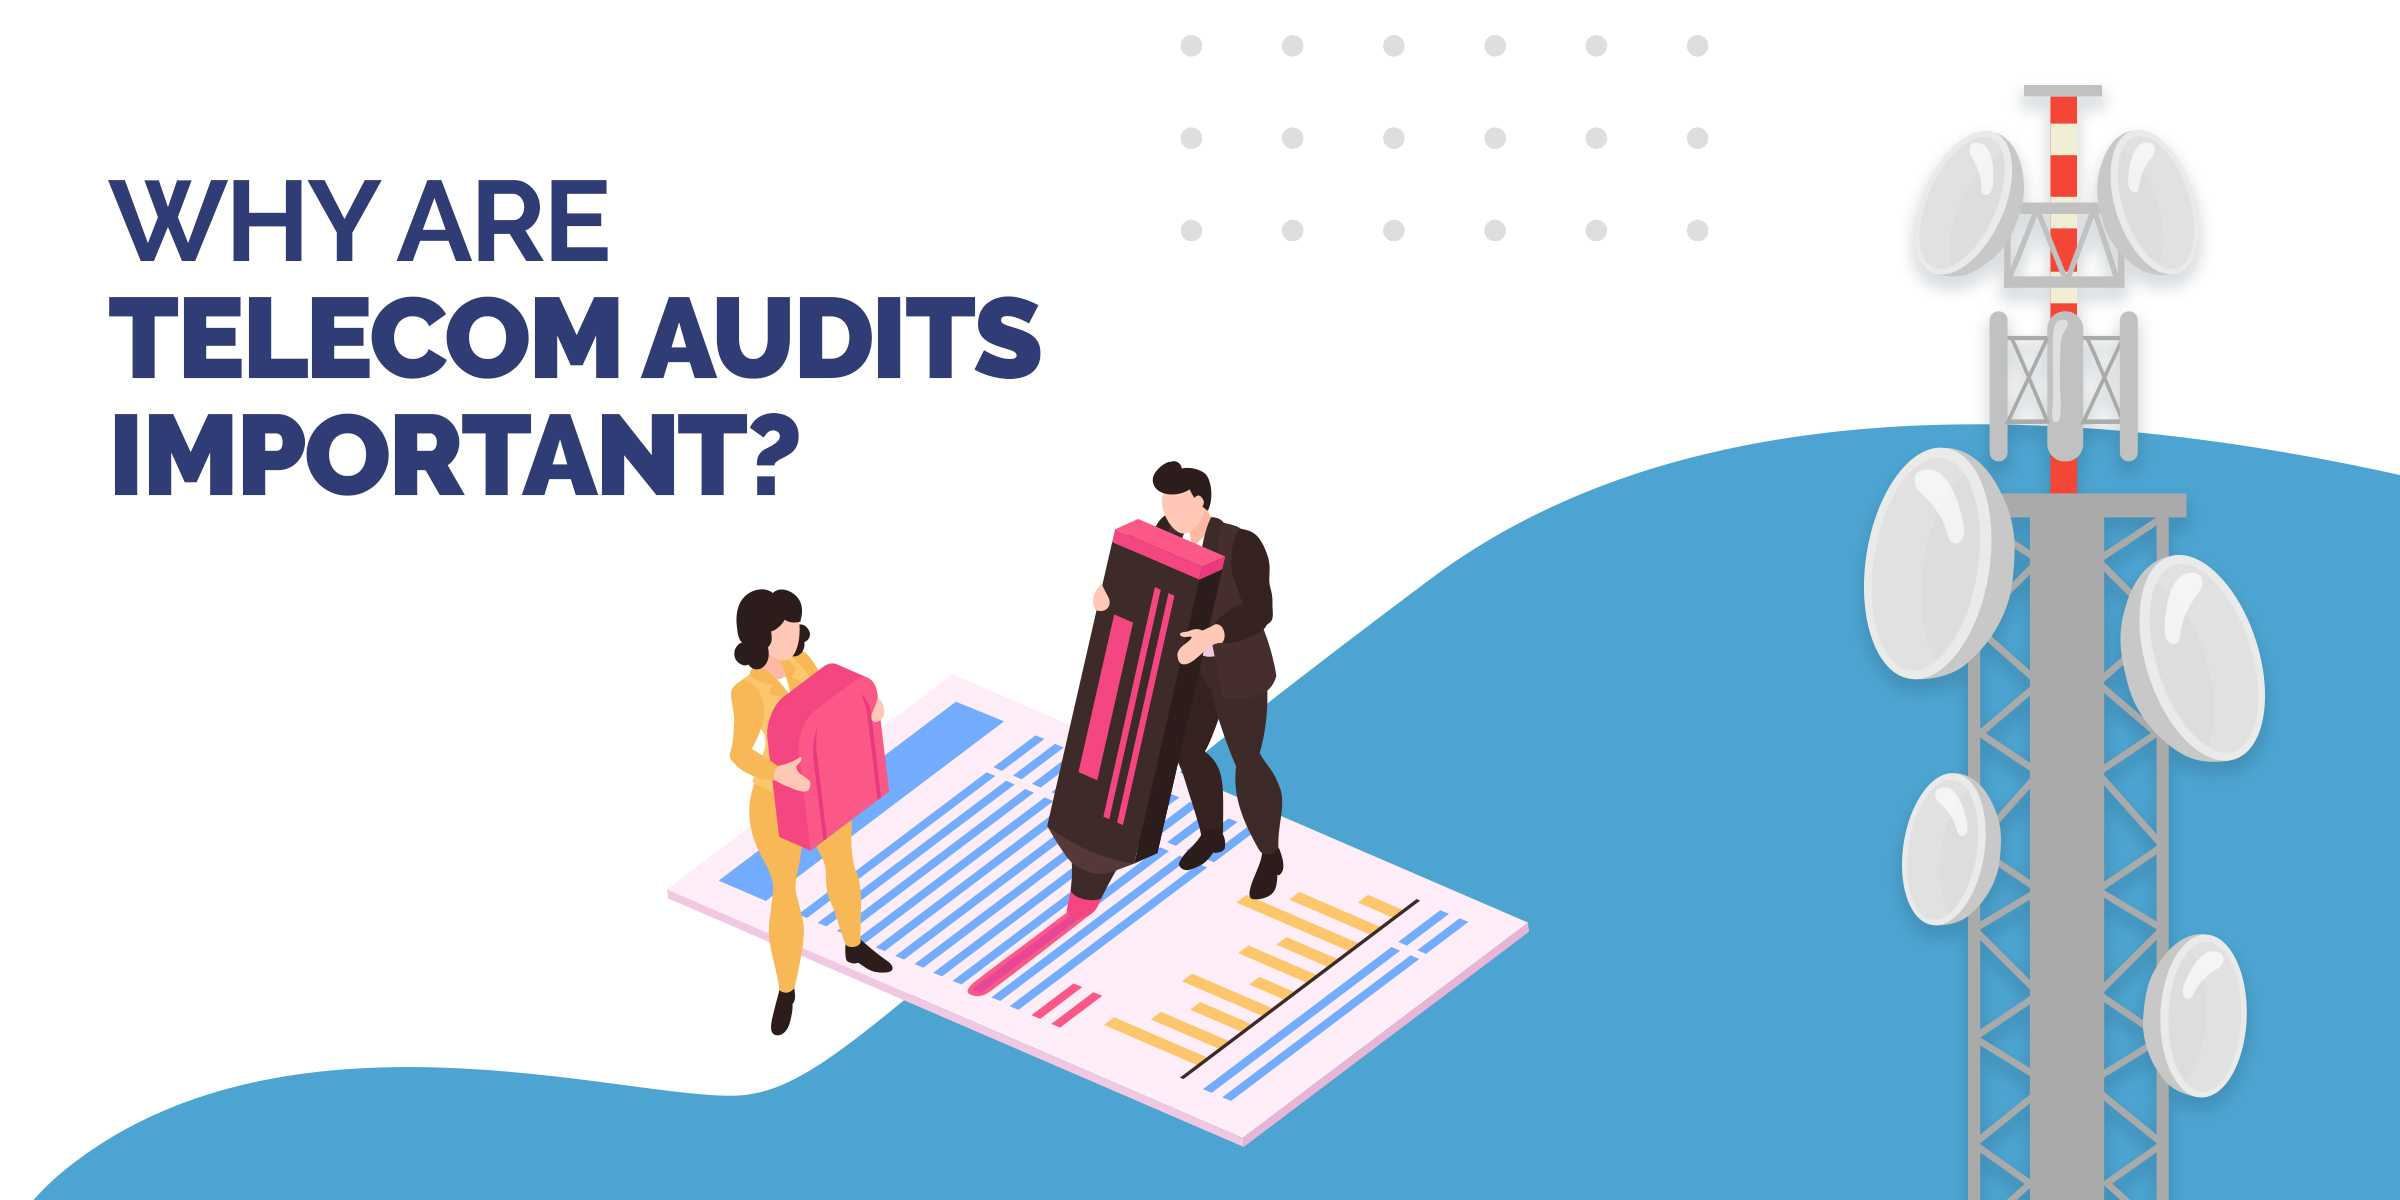 Why Are Telecom Audits Important?